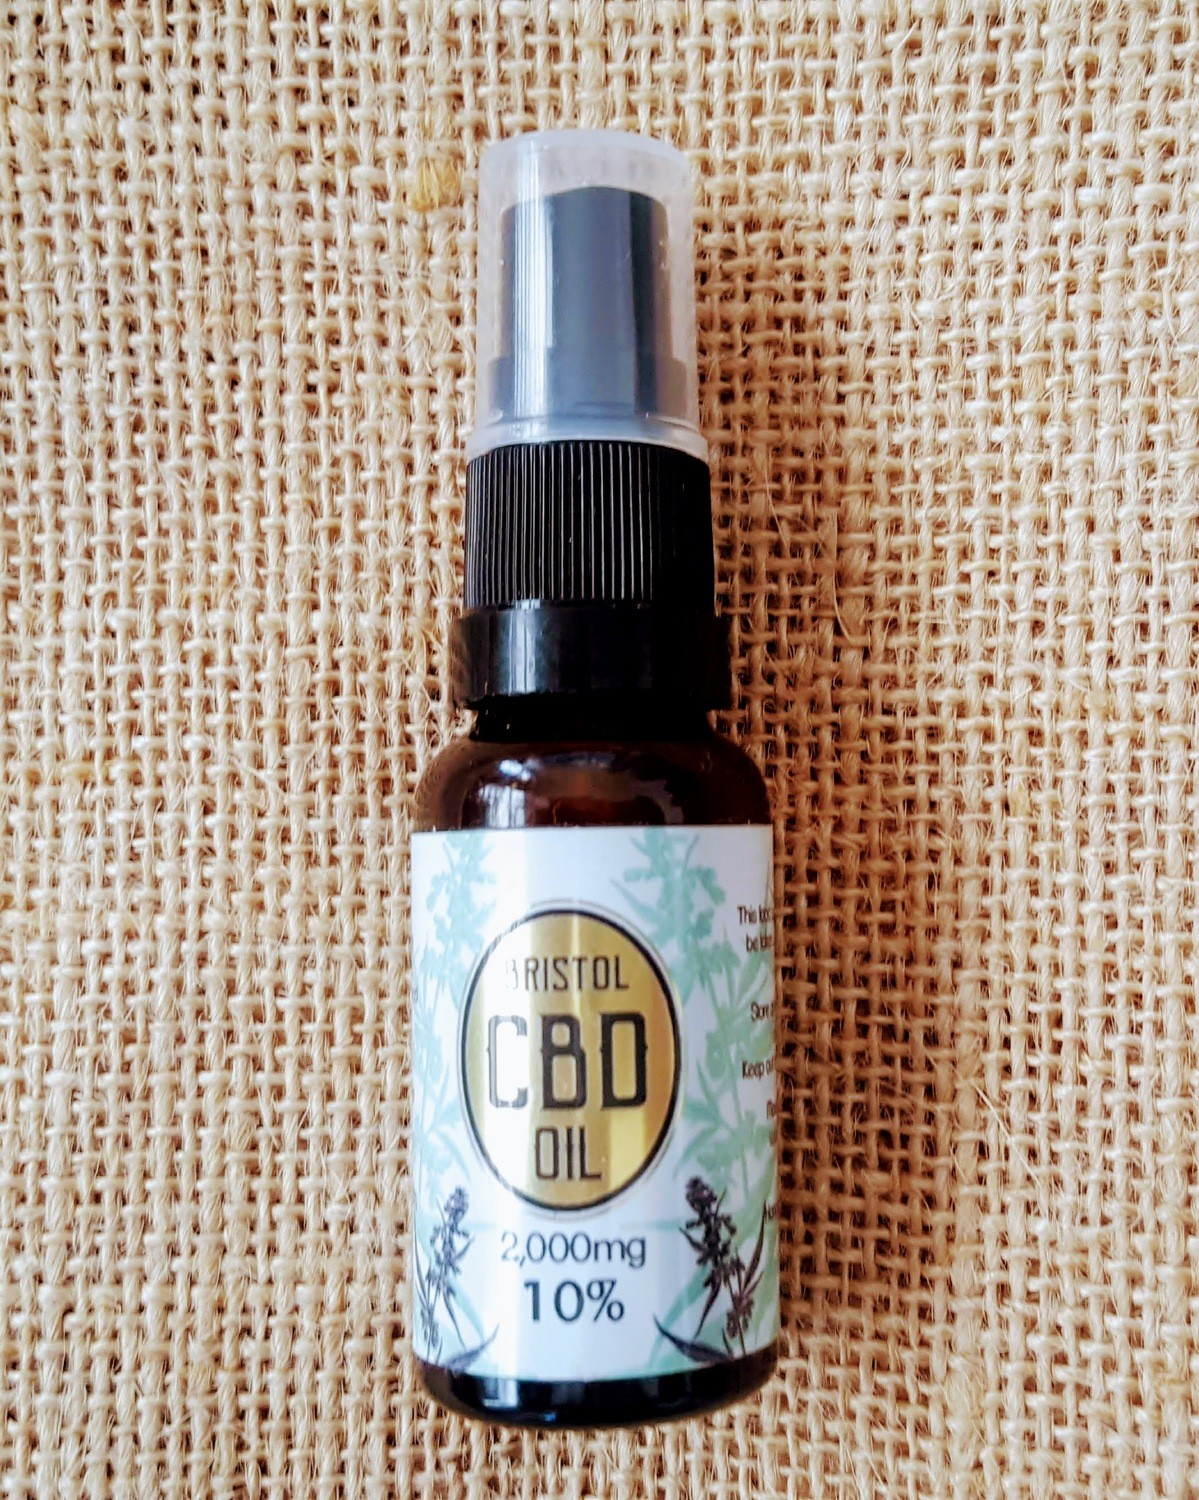 2000mg (10%) 'Gold' CBD oil 20ml Spray